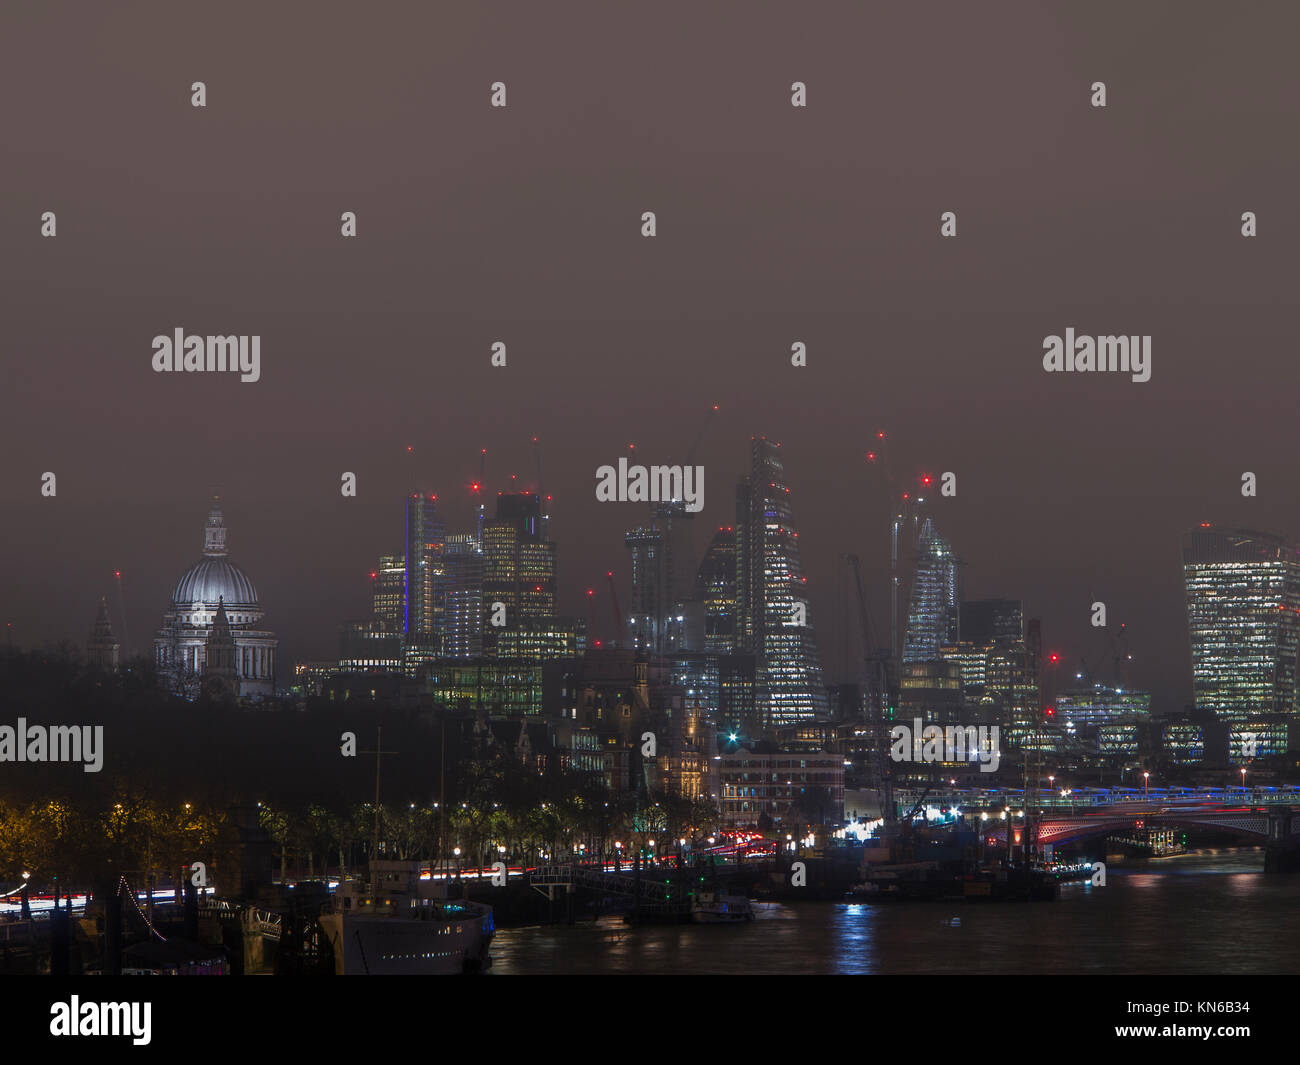 The City of London at night on a foggy, smoggy evening - Stock Image